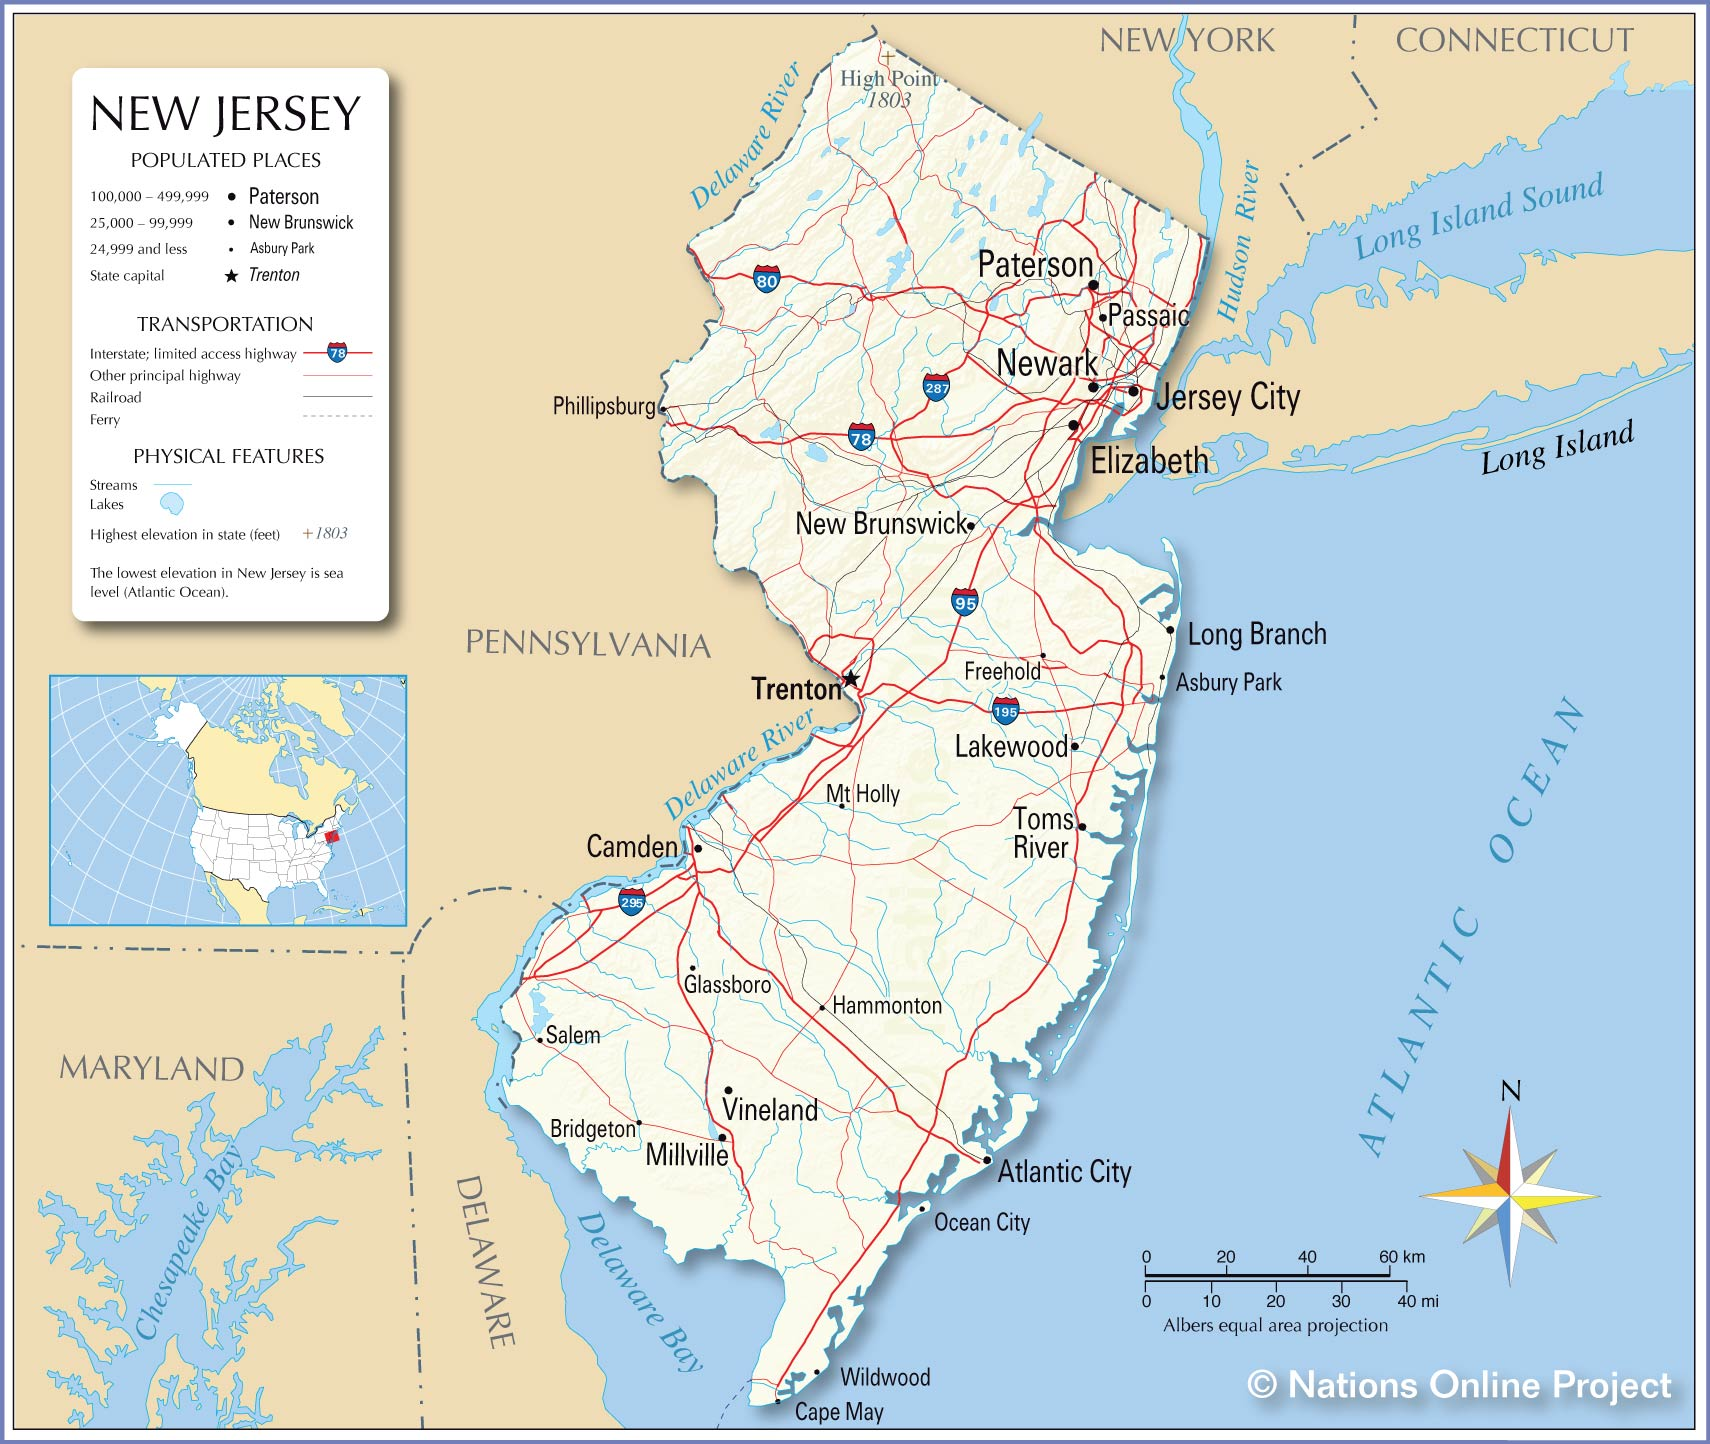 New Jersey, map courtesy of Nations Online Project